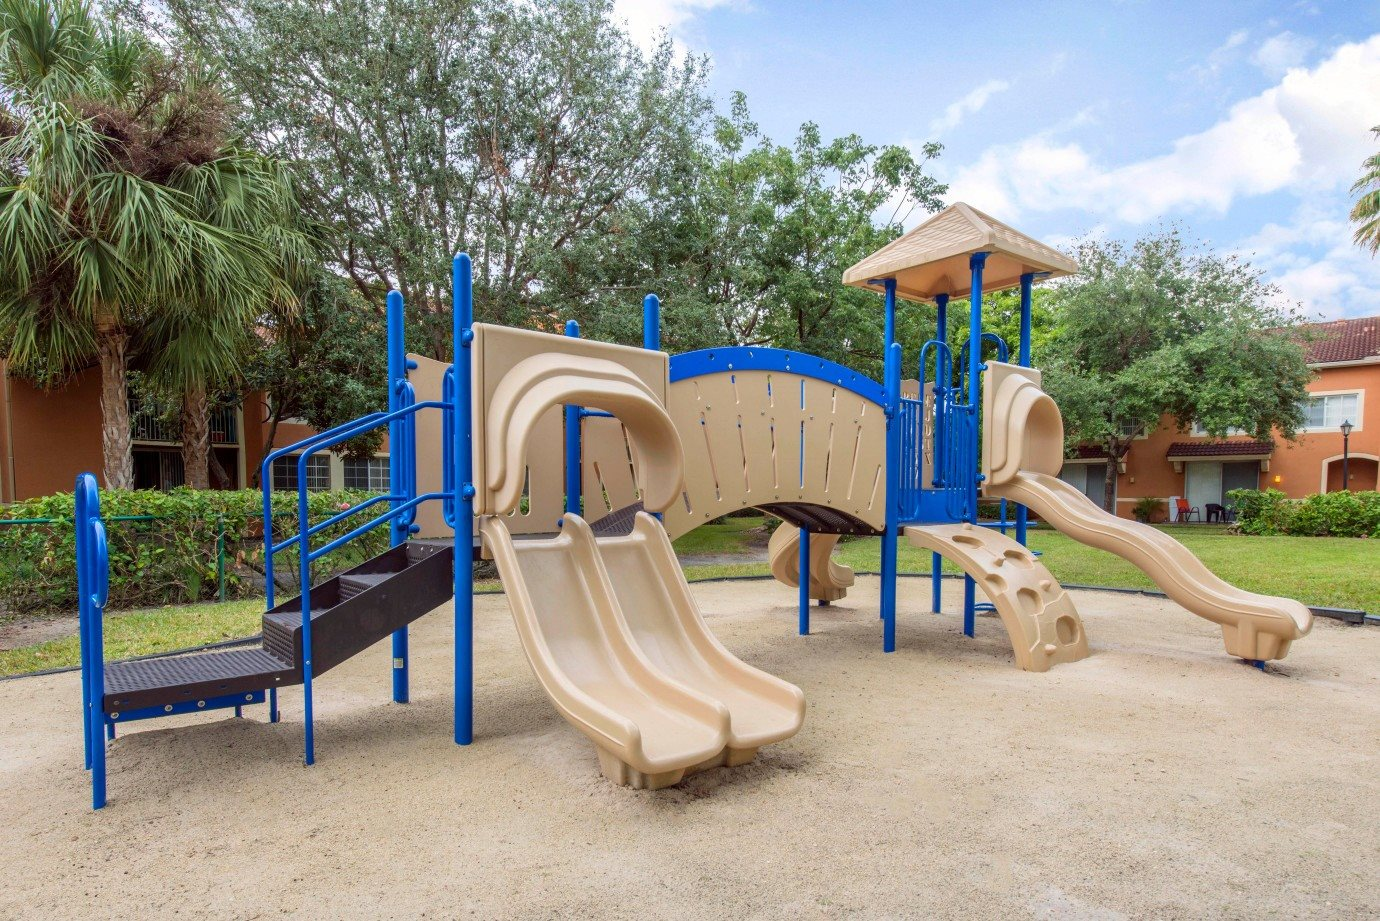 St. Andrews at Winston Park|Playground